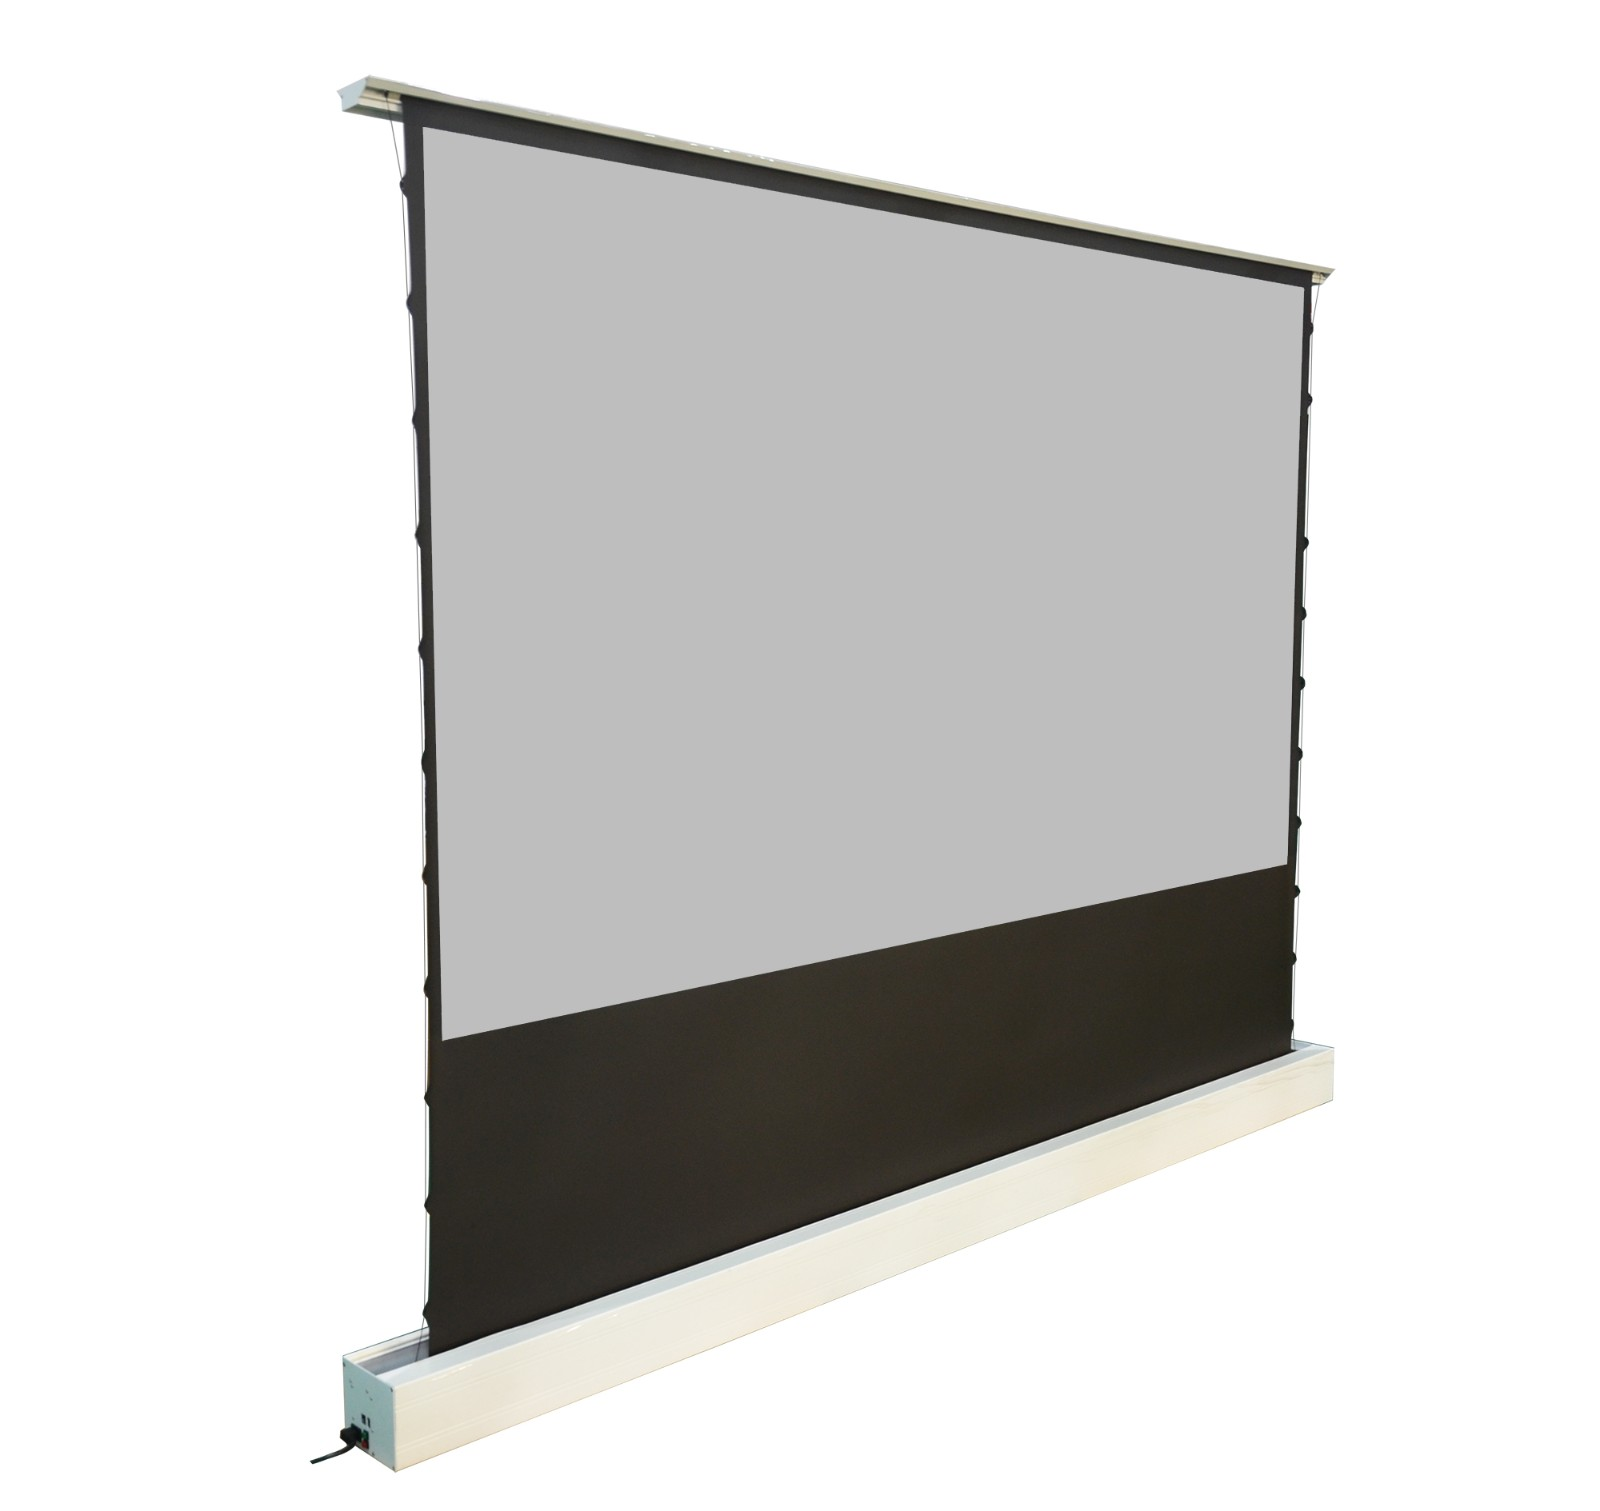 electric floor rising screen inquire now for home-1